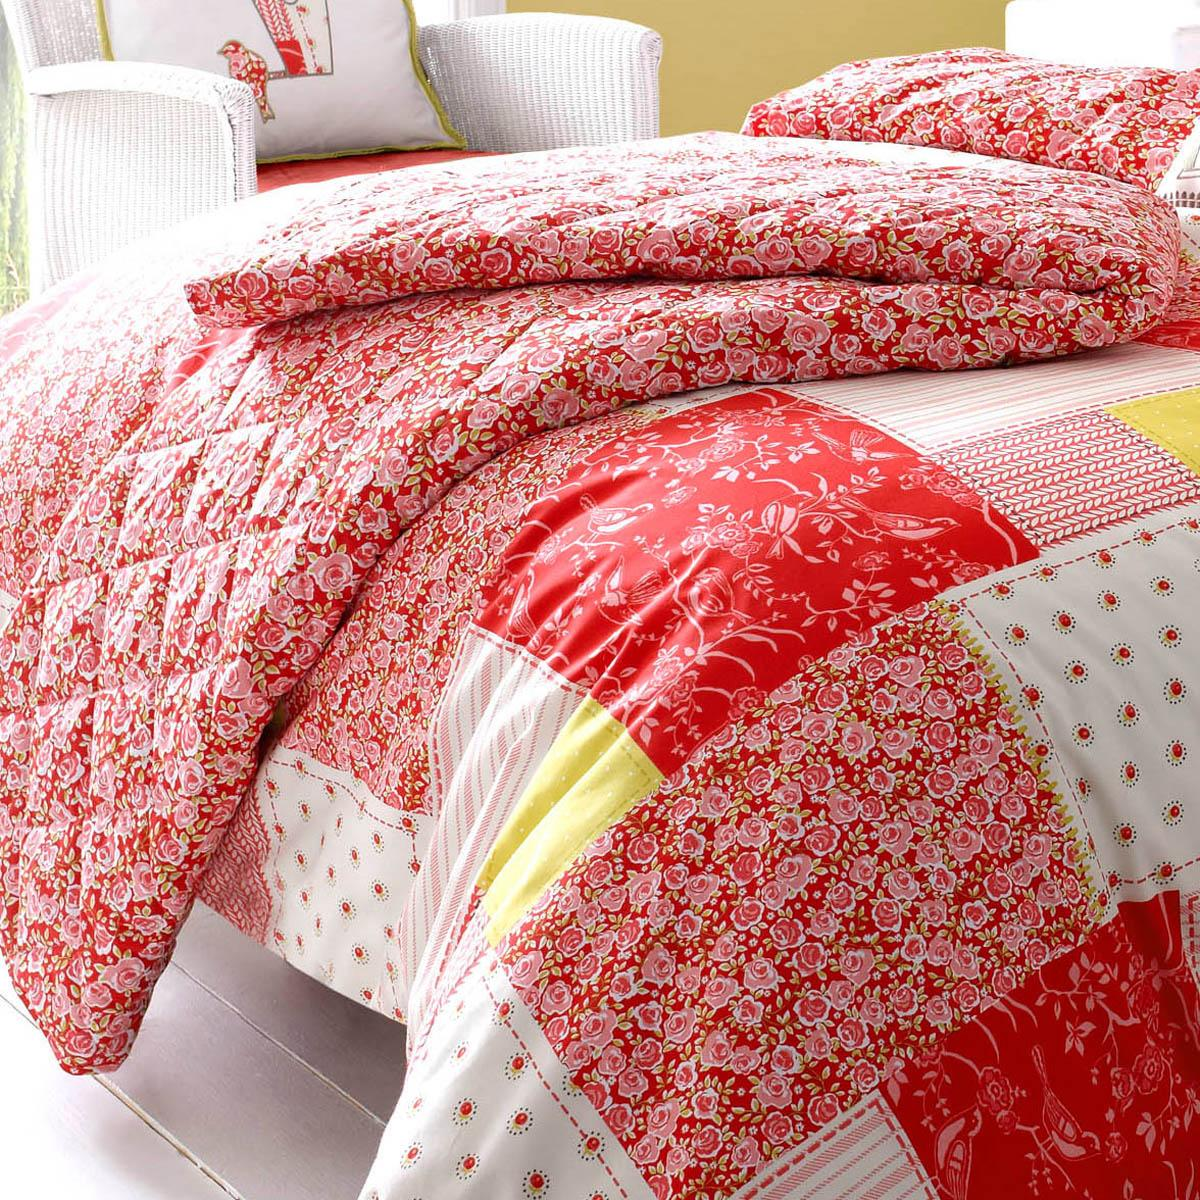 Strawberry Kirstie Allsopp Luella Quilted Bedspread